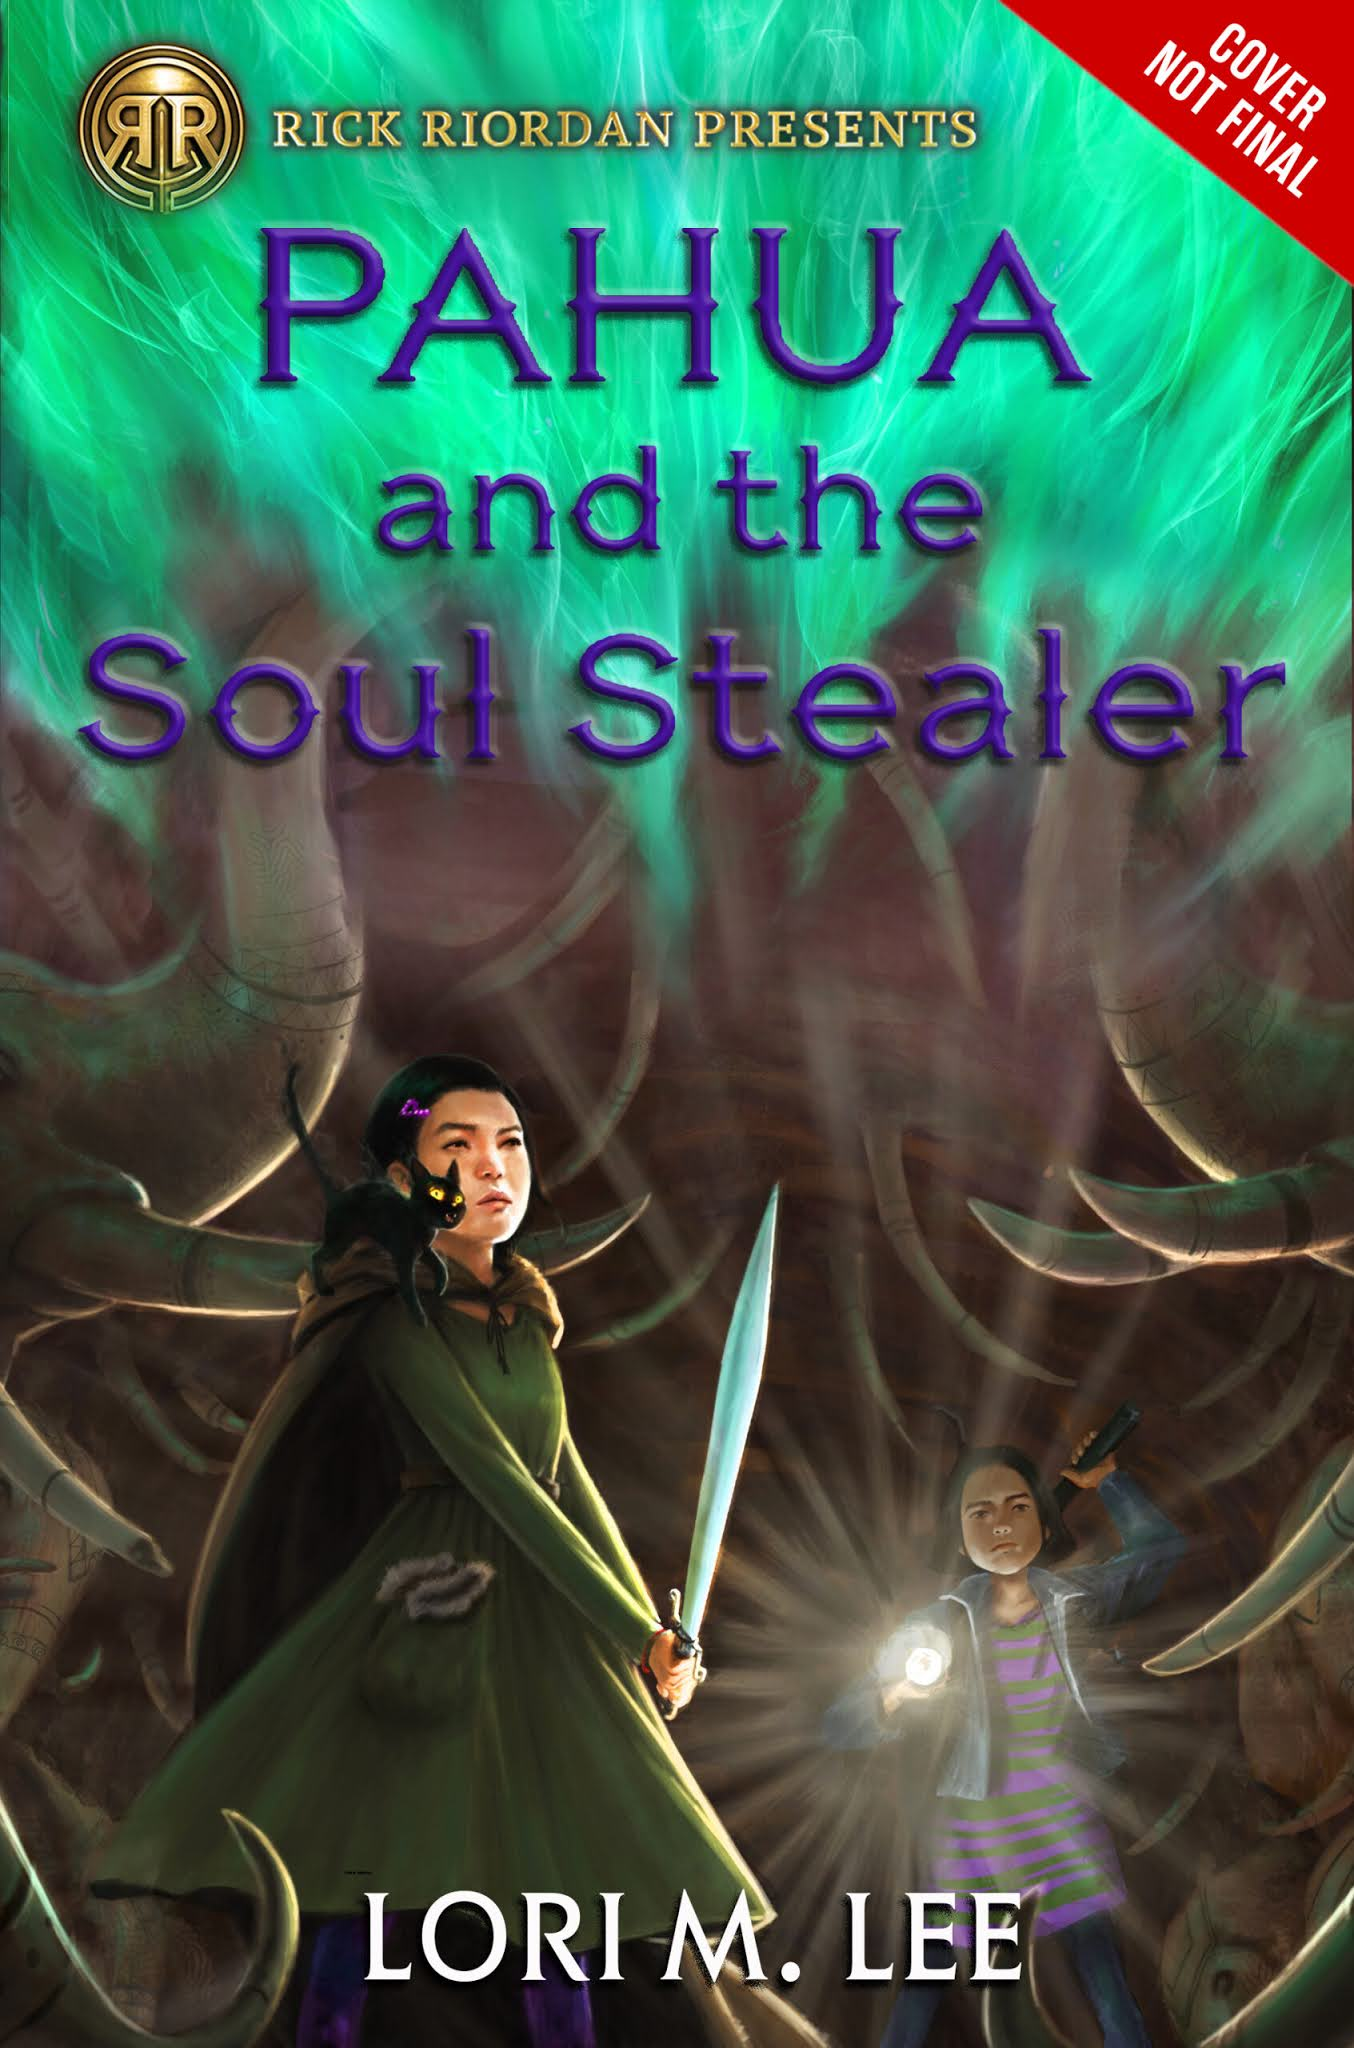 Pahua and the Soul Stealer by Lori M. Lee